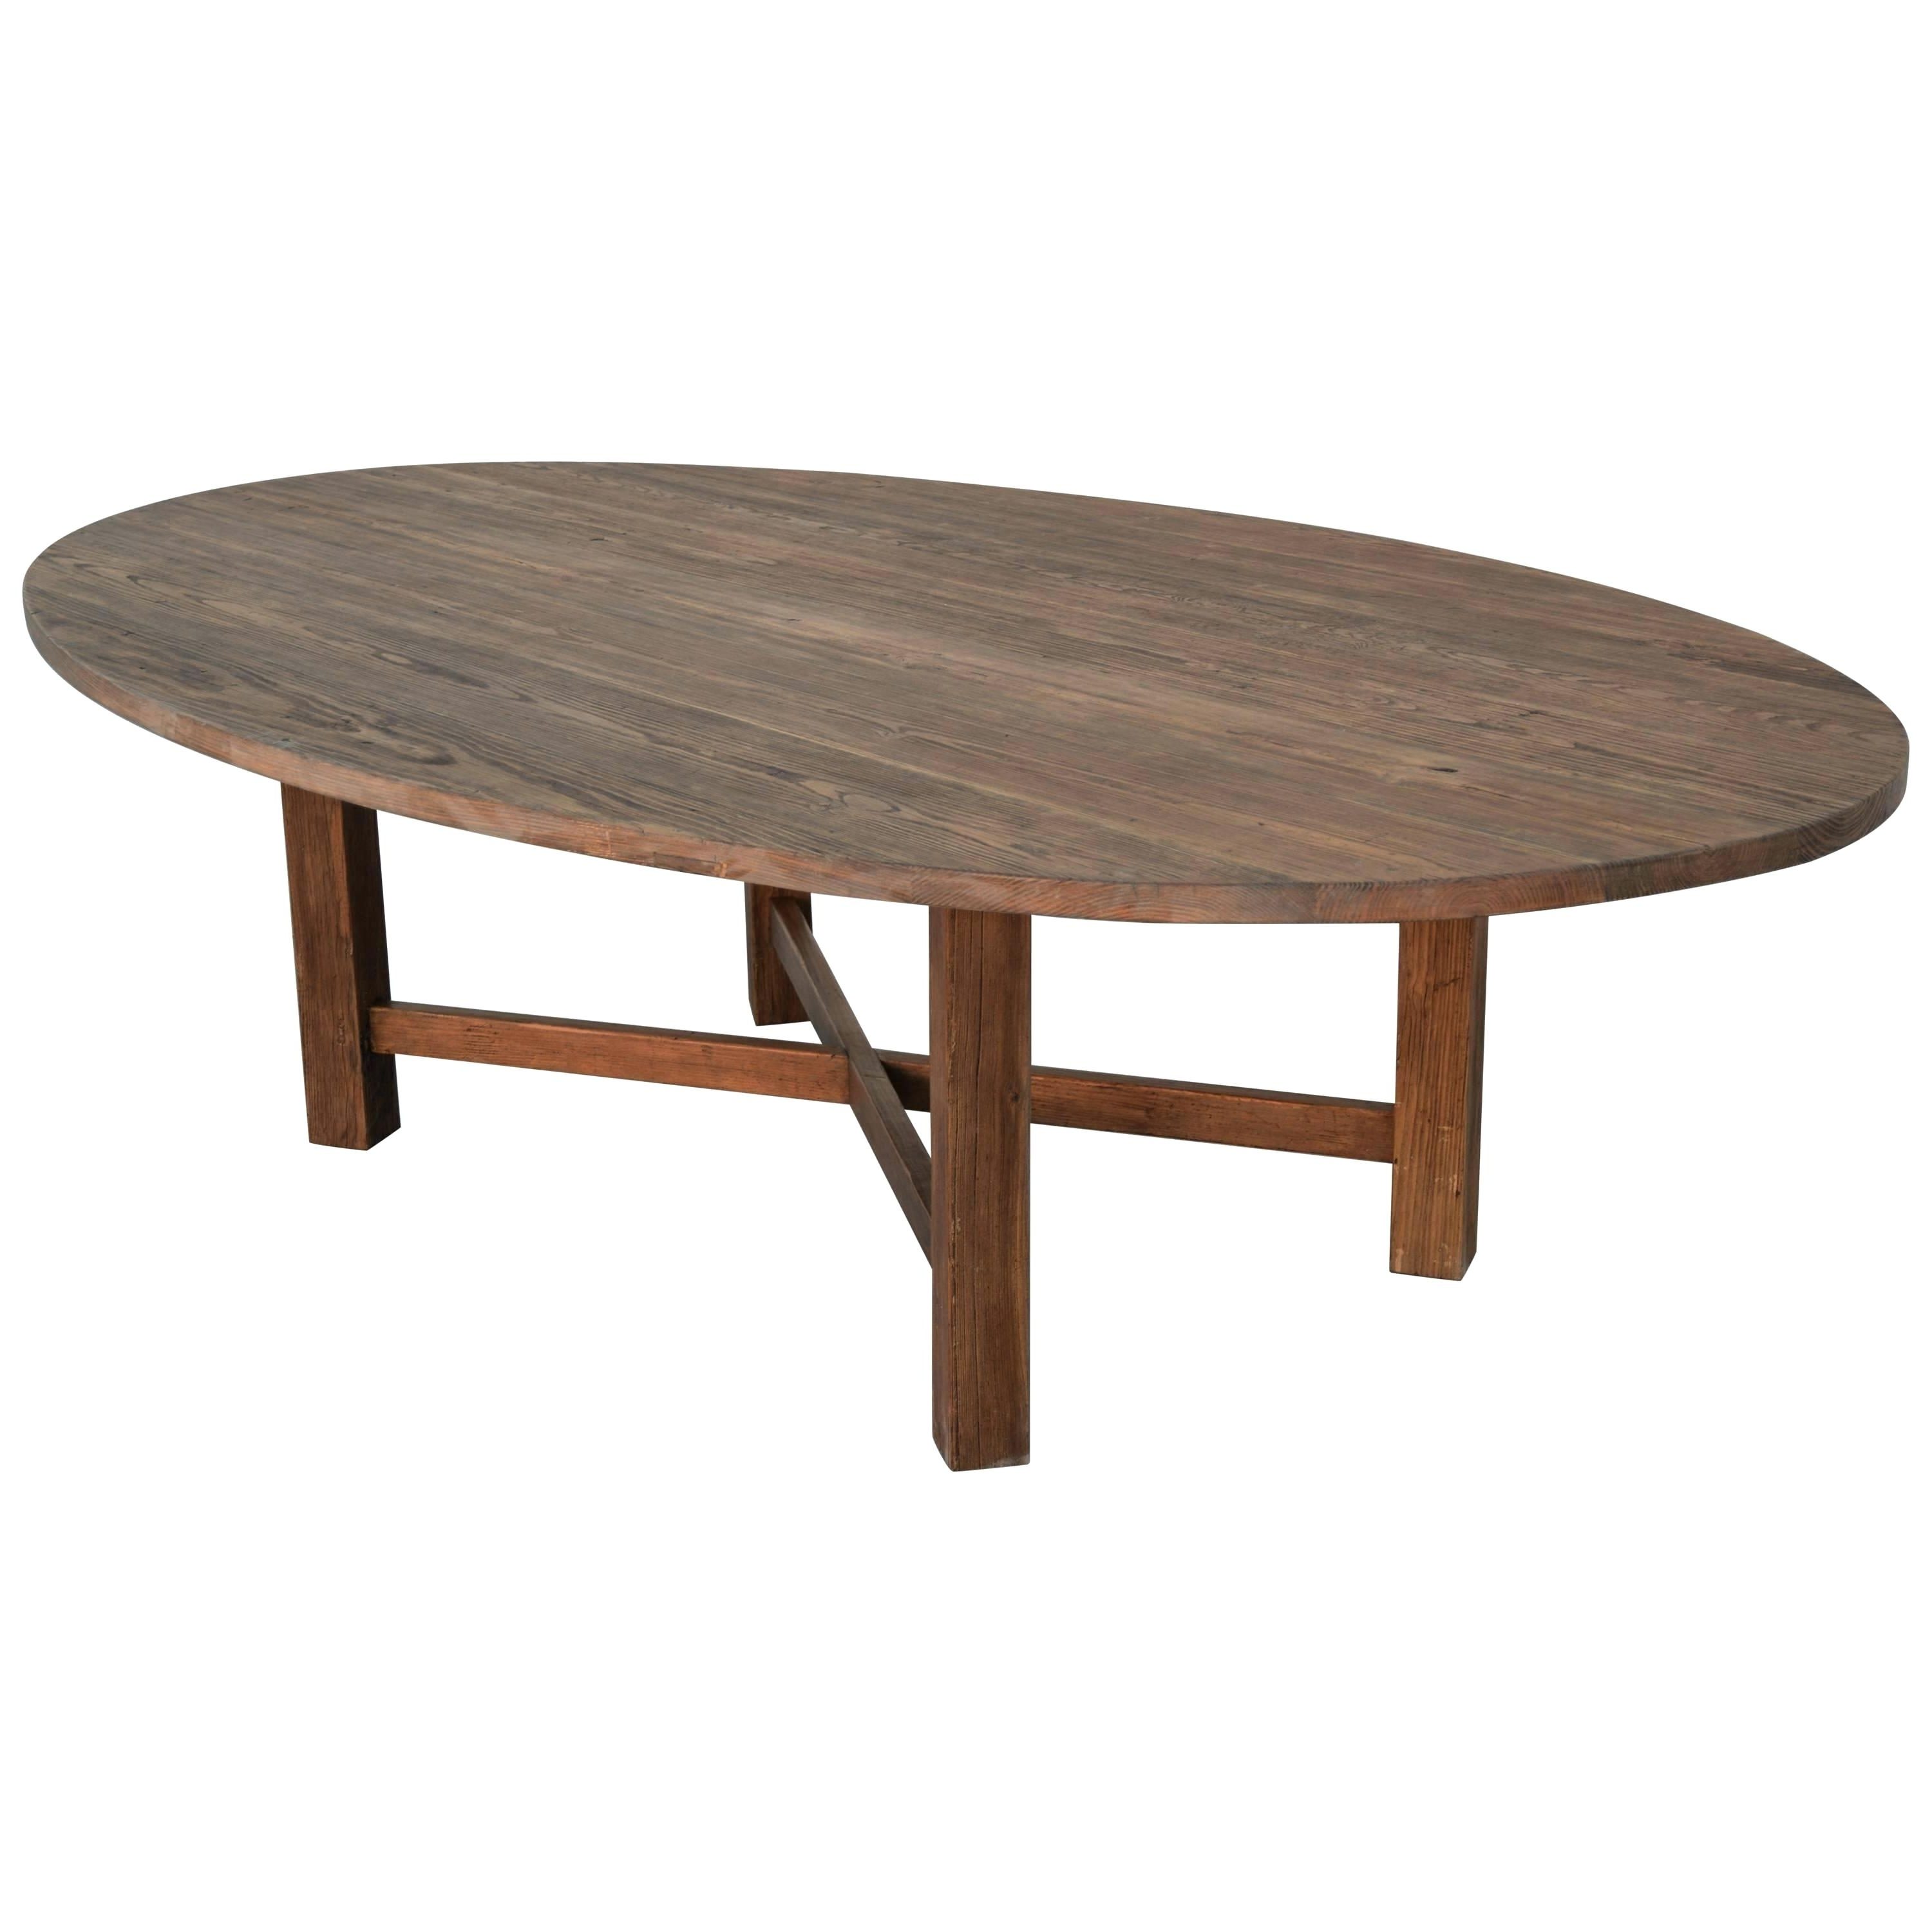 Reclaimed Wood Oval Dining Table Oval Dining Table In Reclaimed With Best And Newest Oval Reclaimed Wood Dining Tables (View 19 of 25)